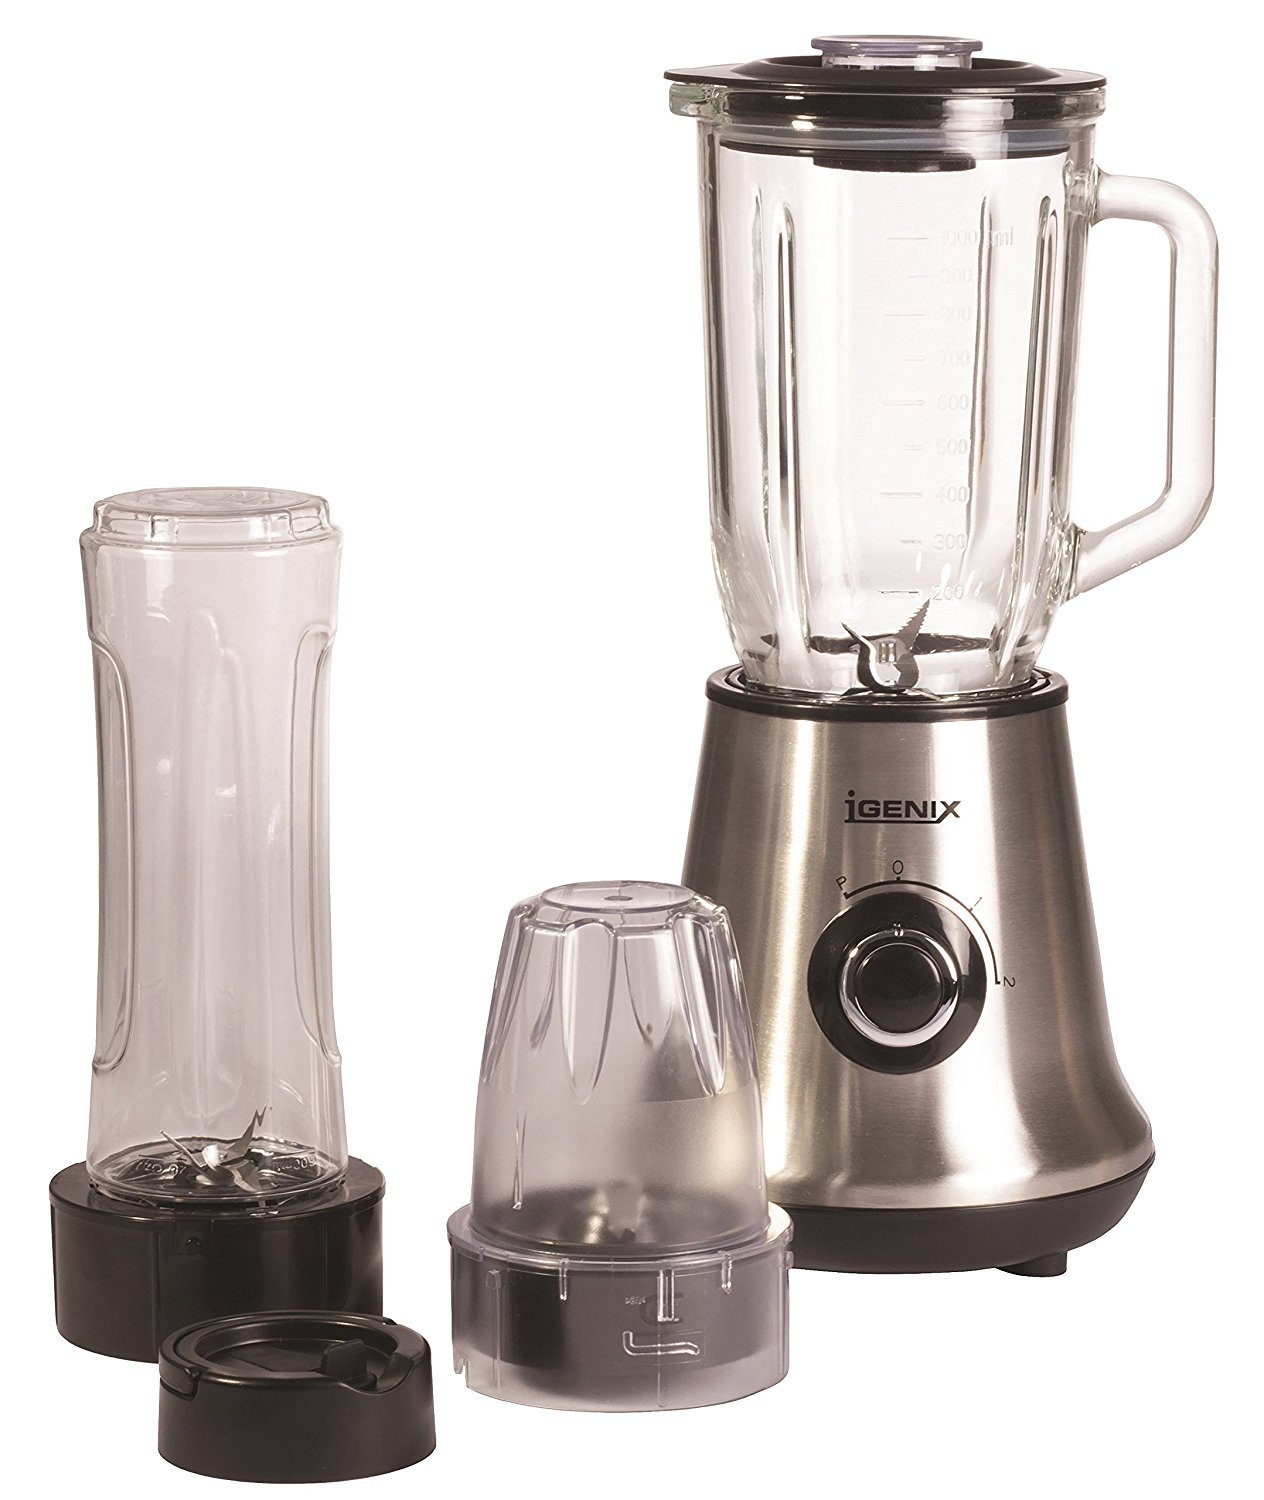 Igenix ig8330 450w 3 in 1 blender grinder smoothie for Kitchen perfected blender